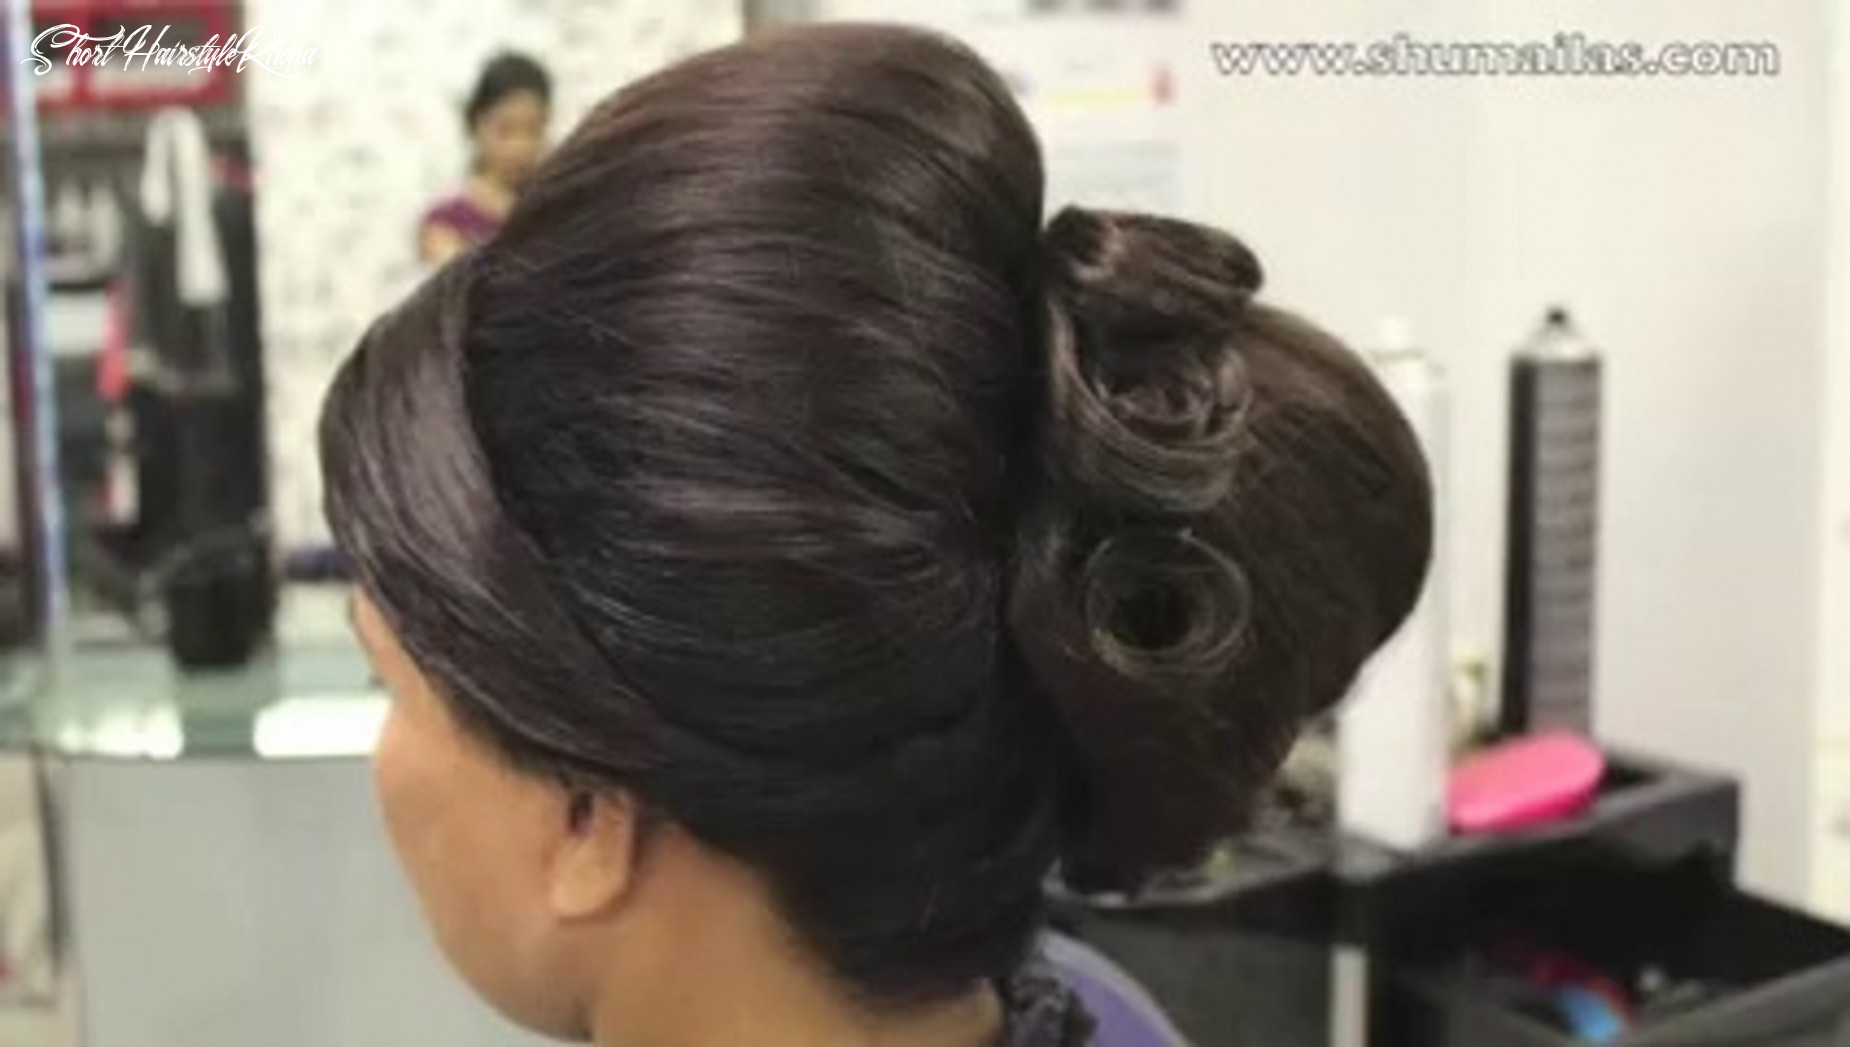 Beehive hairstyle indian, pakistani, asian bridal hair style wedding hairstyles for short hair short hairstyle khopa